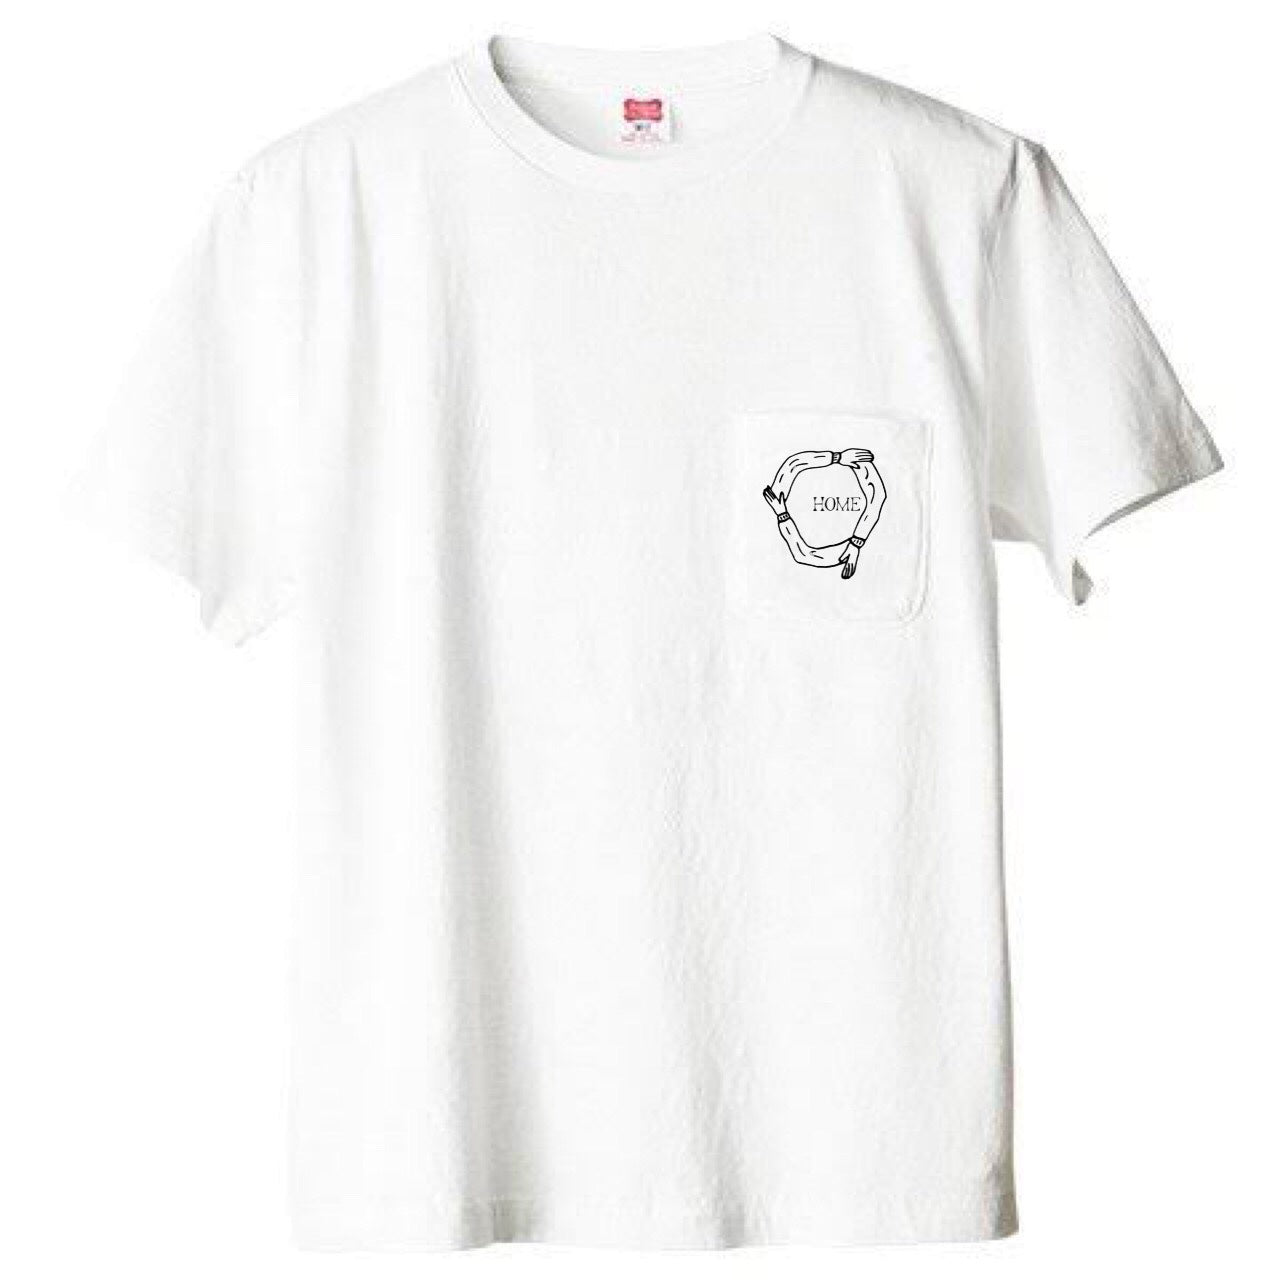 HOME T-SHIRT designed by 河原太朗 (ampel)